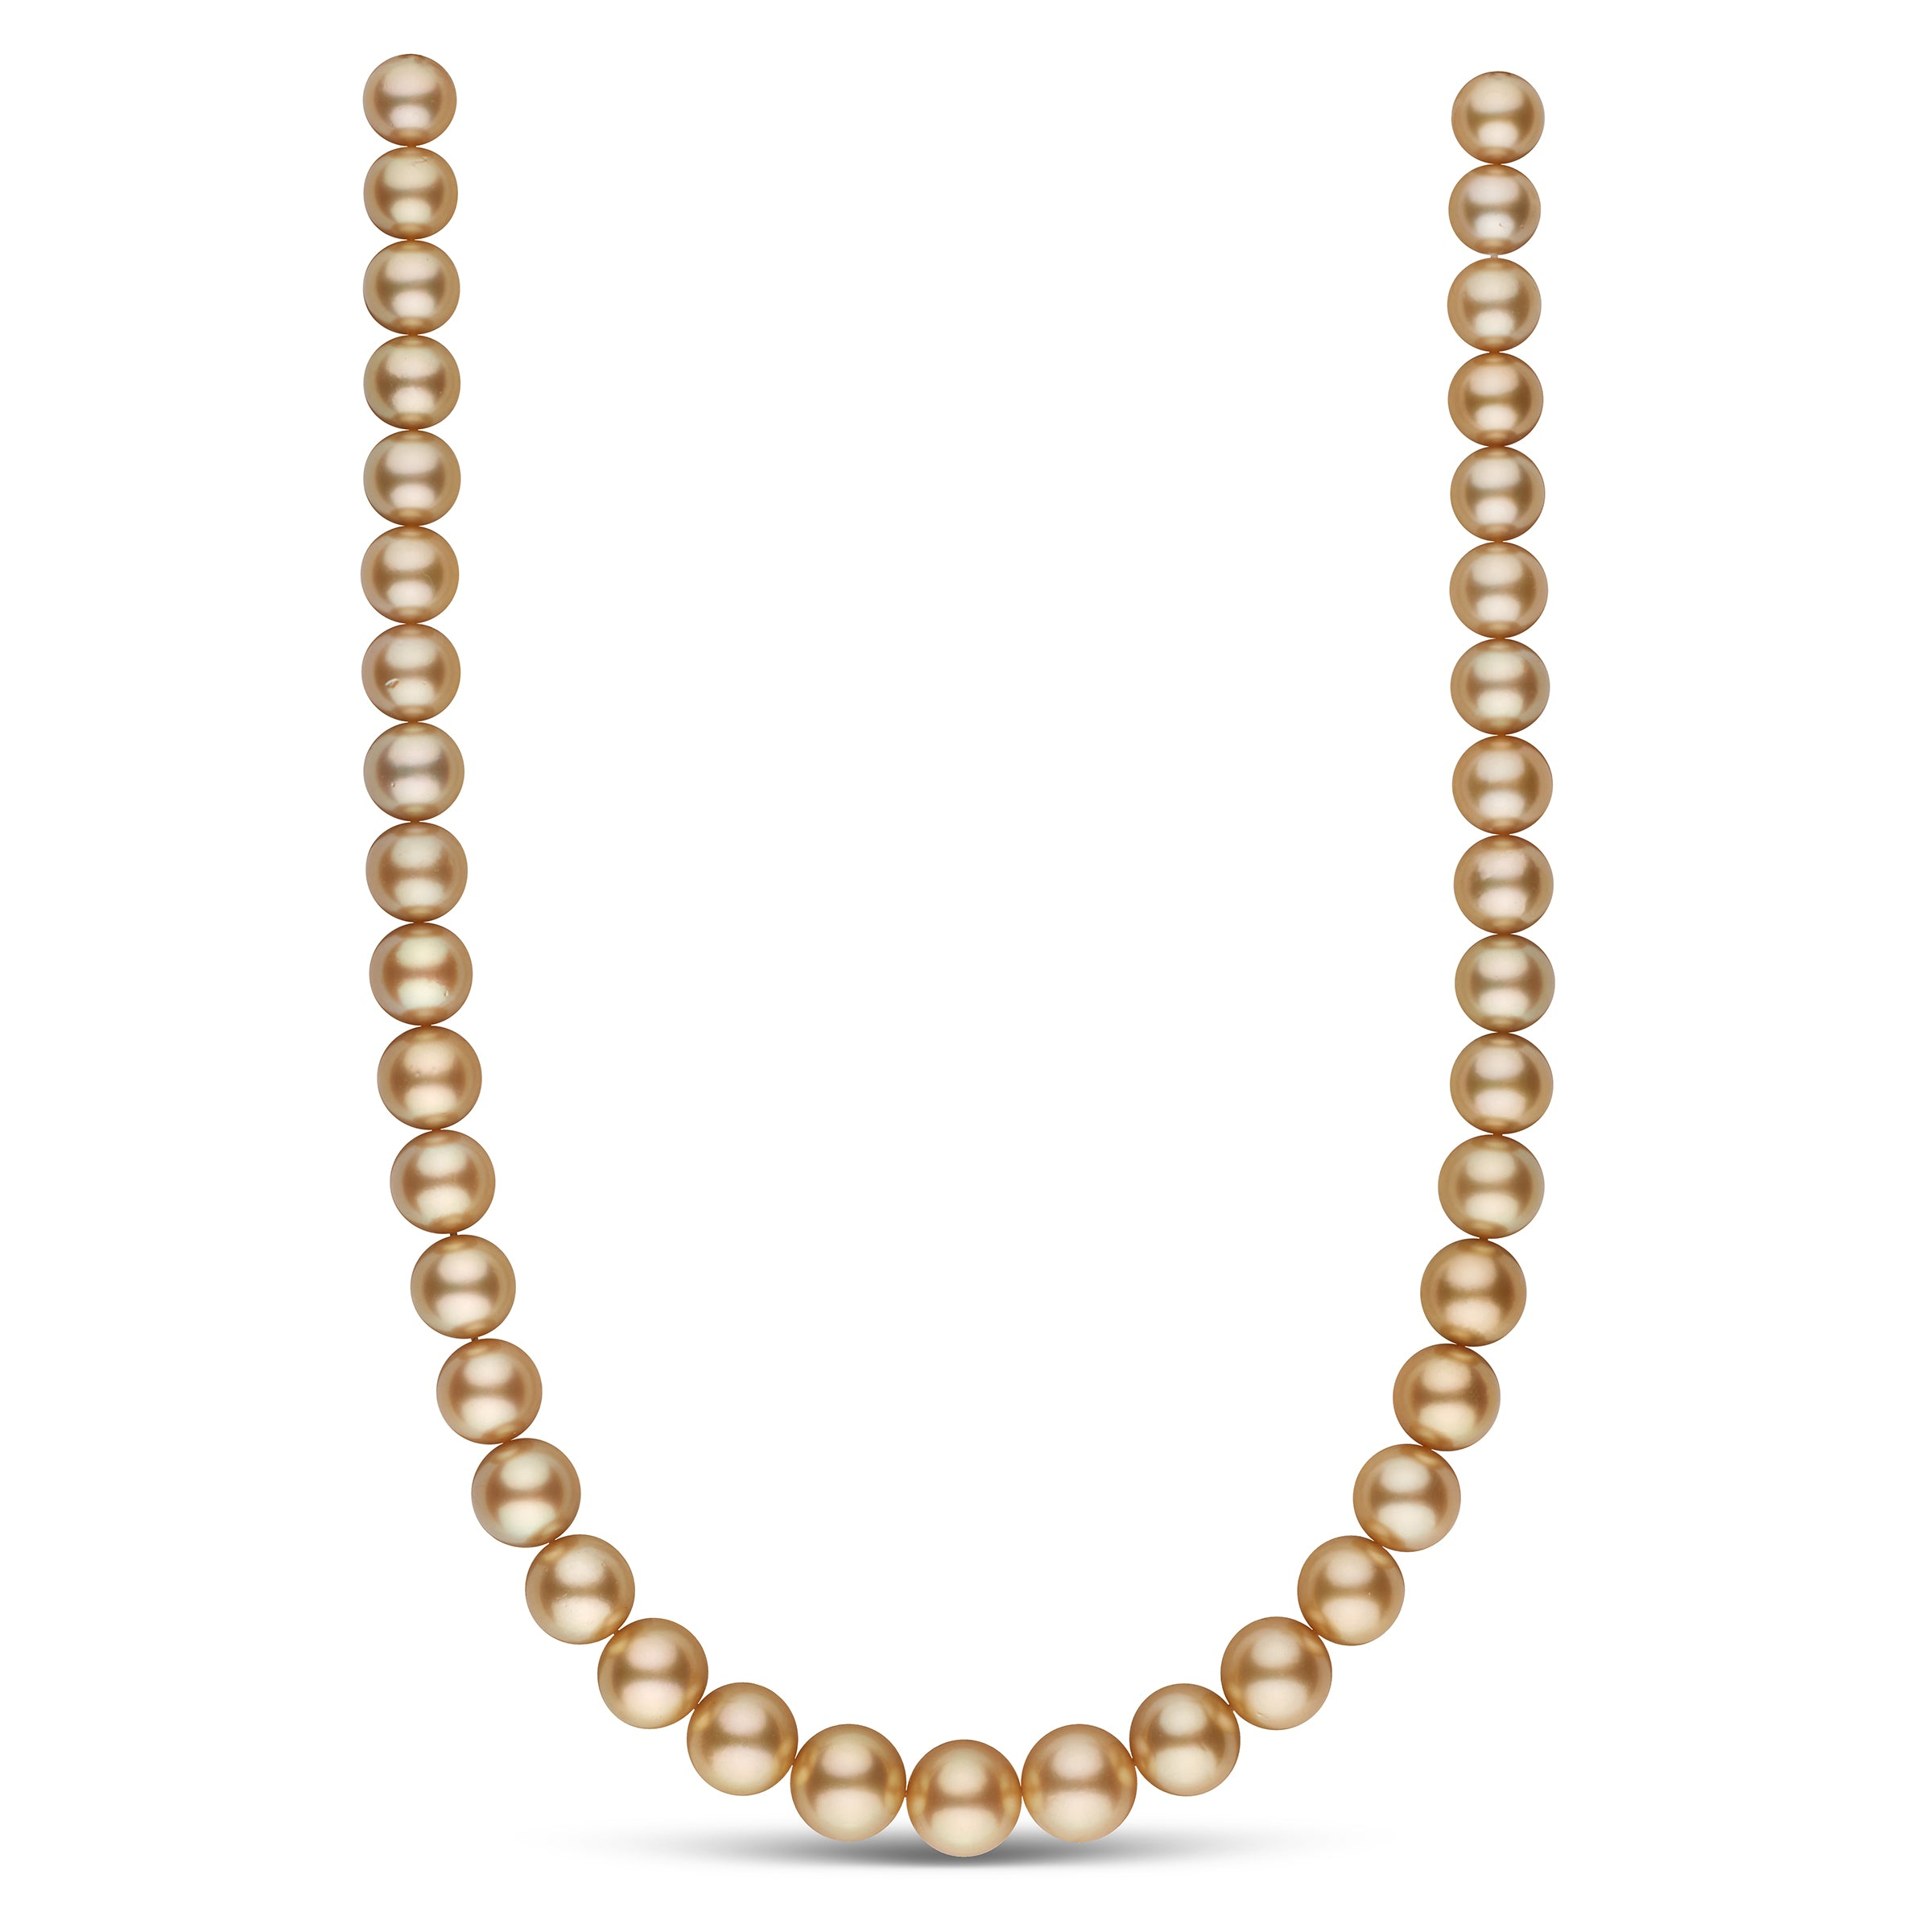 The Artist Golden South Sea Pearl Necklace